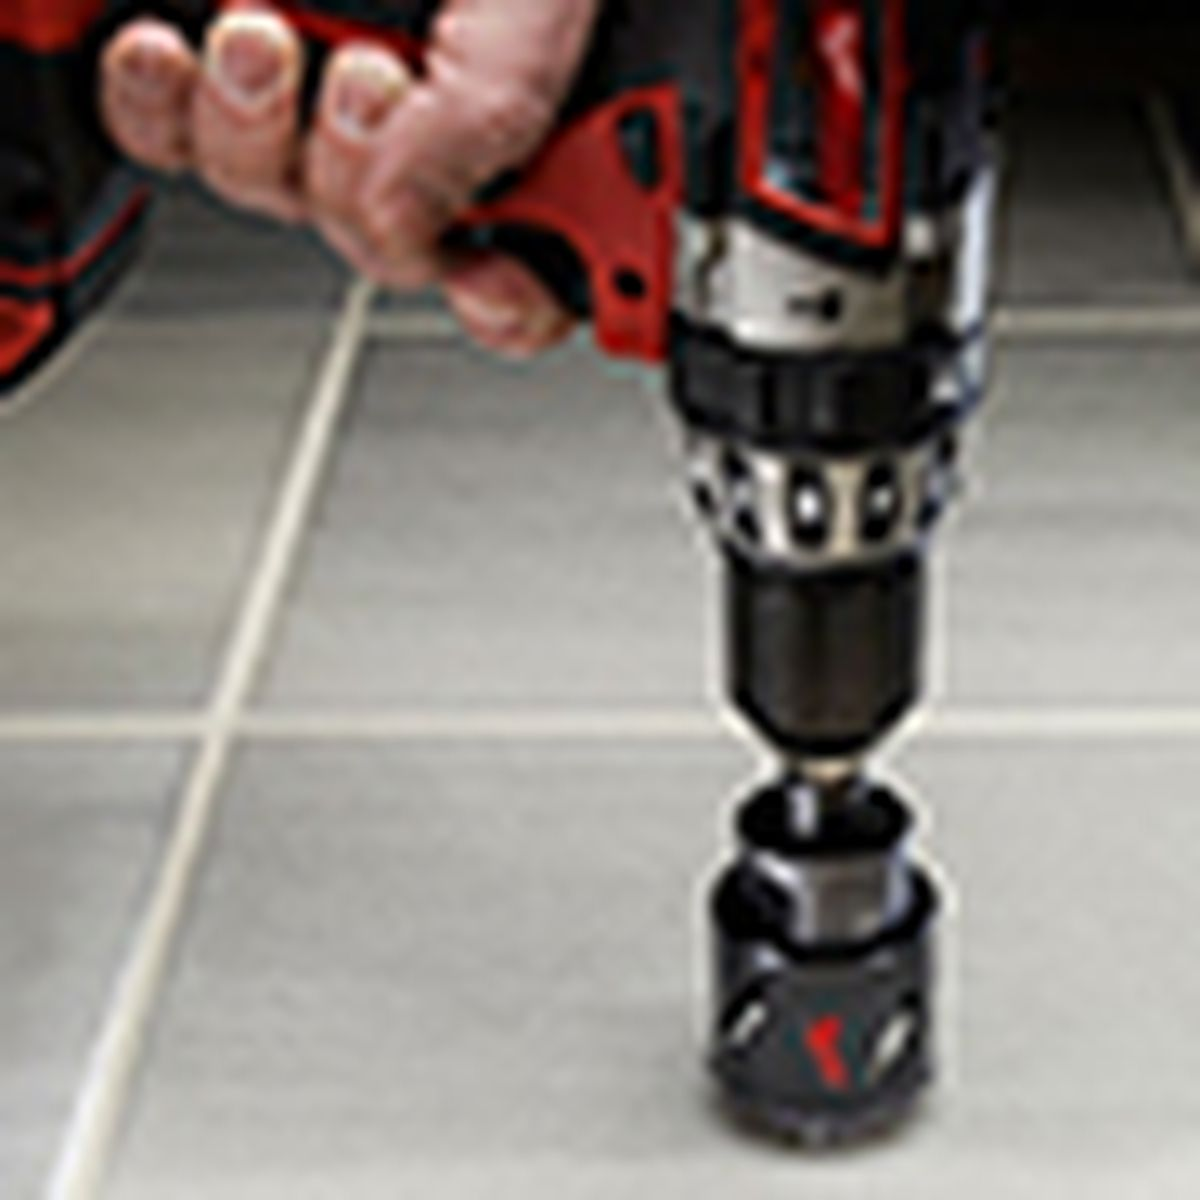 drill with diamond-grit hole saw, for drilling holes in tile